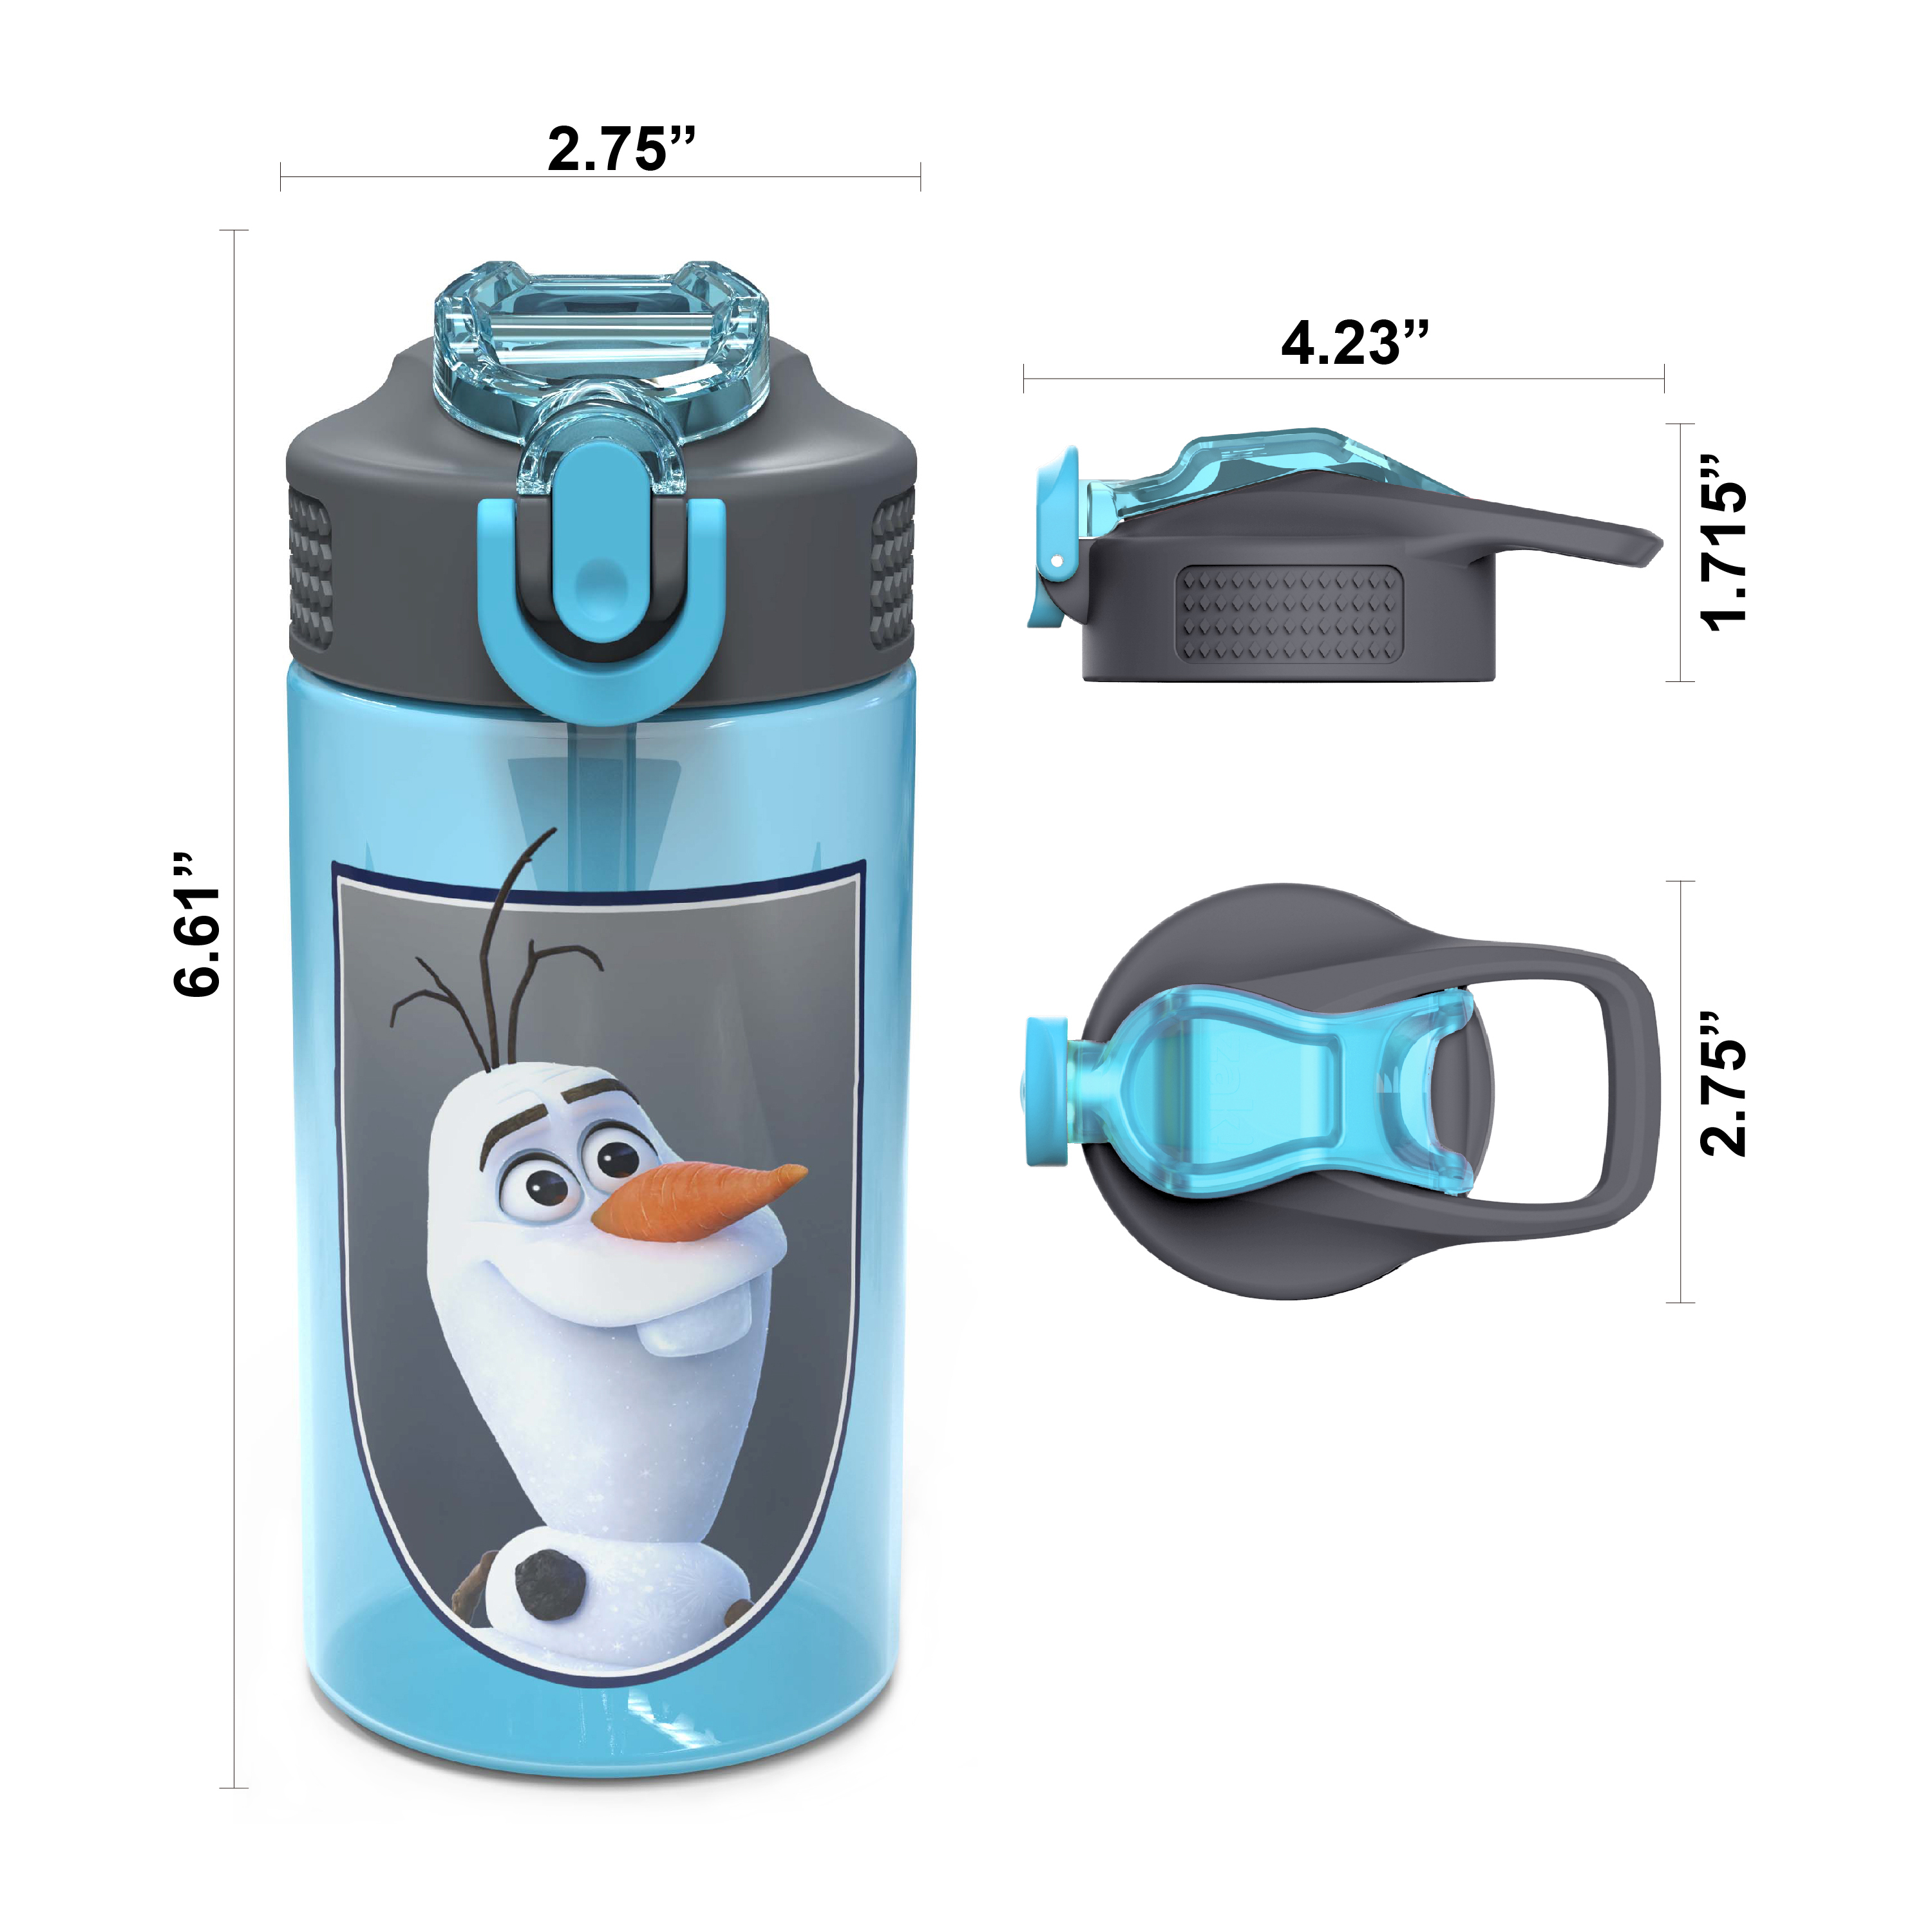 Disney Frozen 2 Movie Water Bottle, Anna , Elsa and Olaf, 2-piece set slideshow image 3